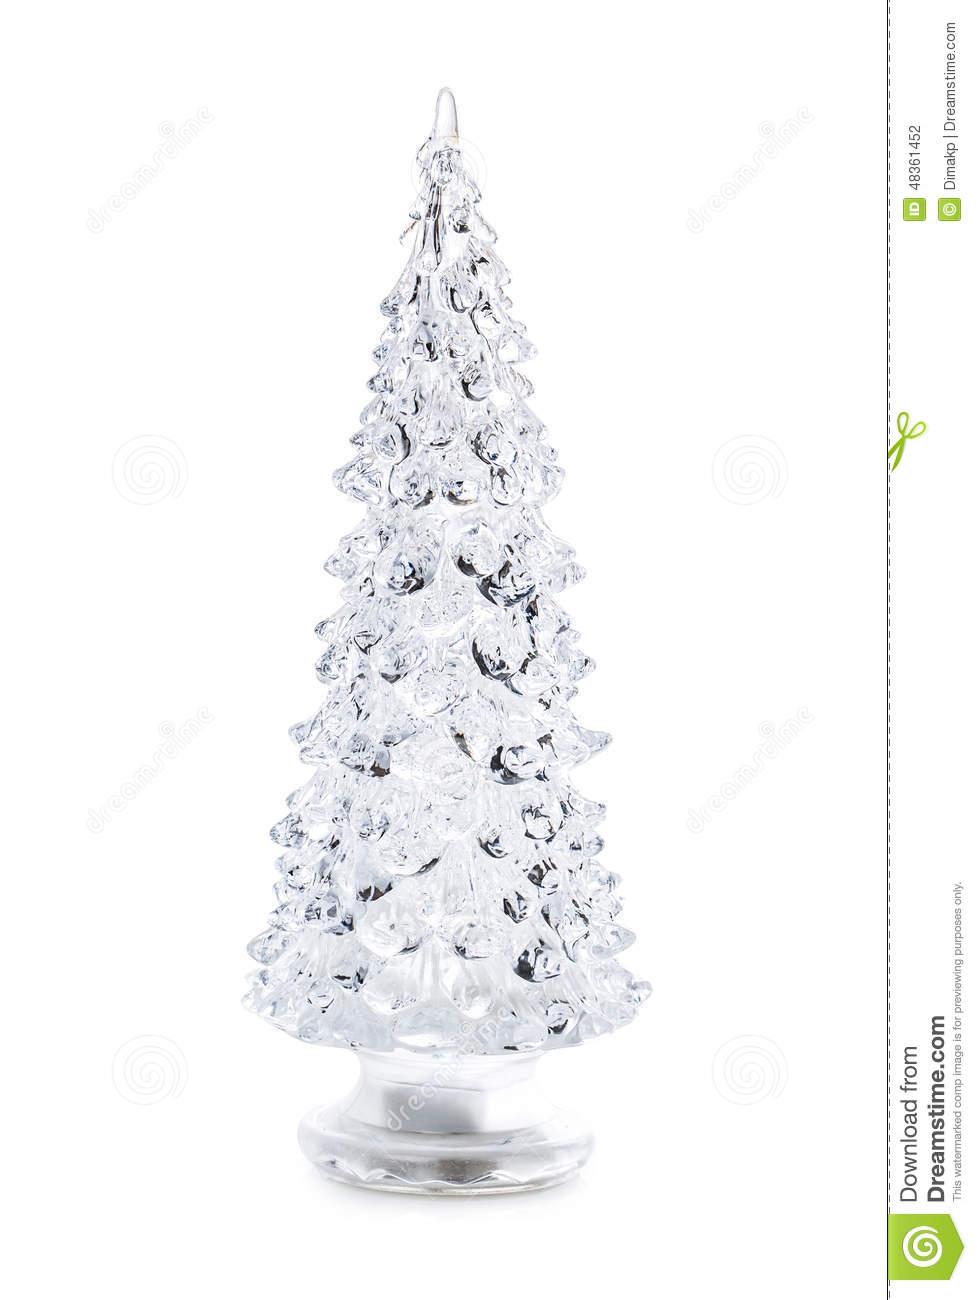 royalty free stock photo download glass christmas tree - Glass Christmas Tree